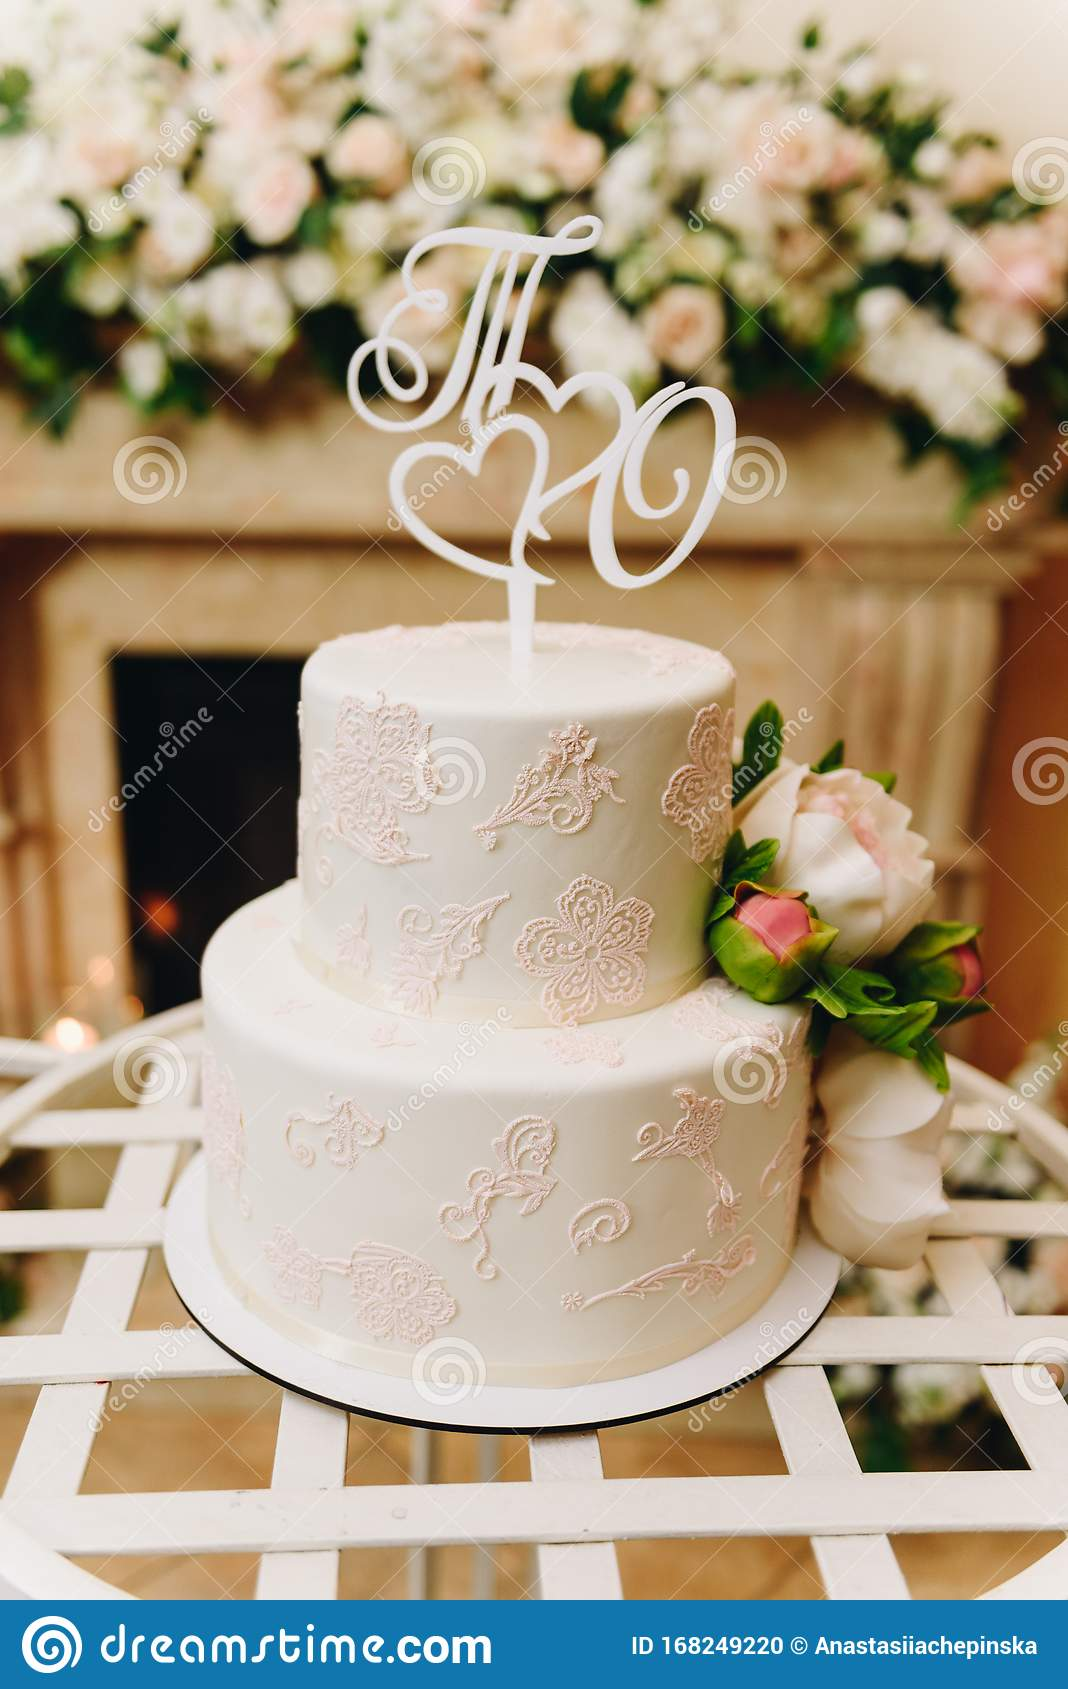 Elegant Simple Wedding Cake With An Ornate Topper Stock Photo Image Of Delicious Colorful 168249220,Minimalist Negative Space Logo Design